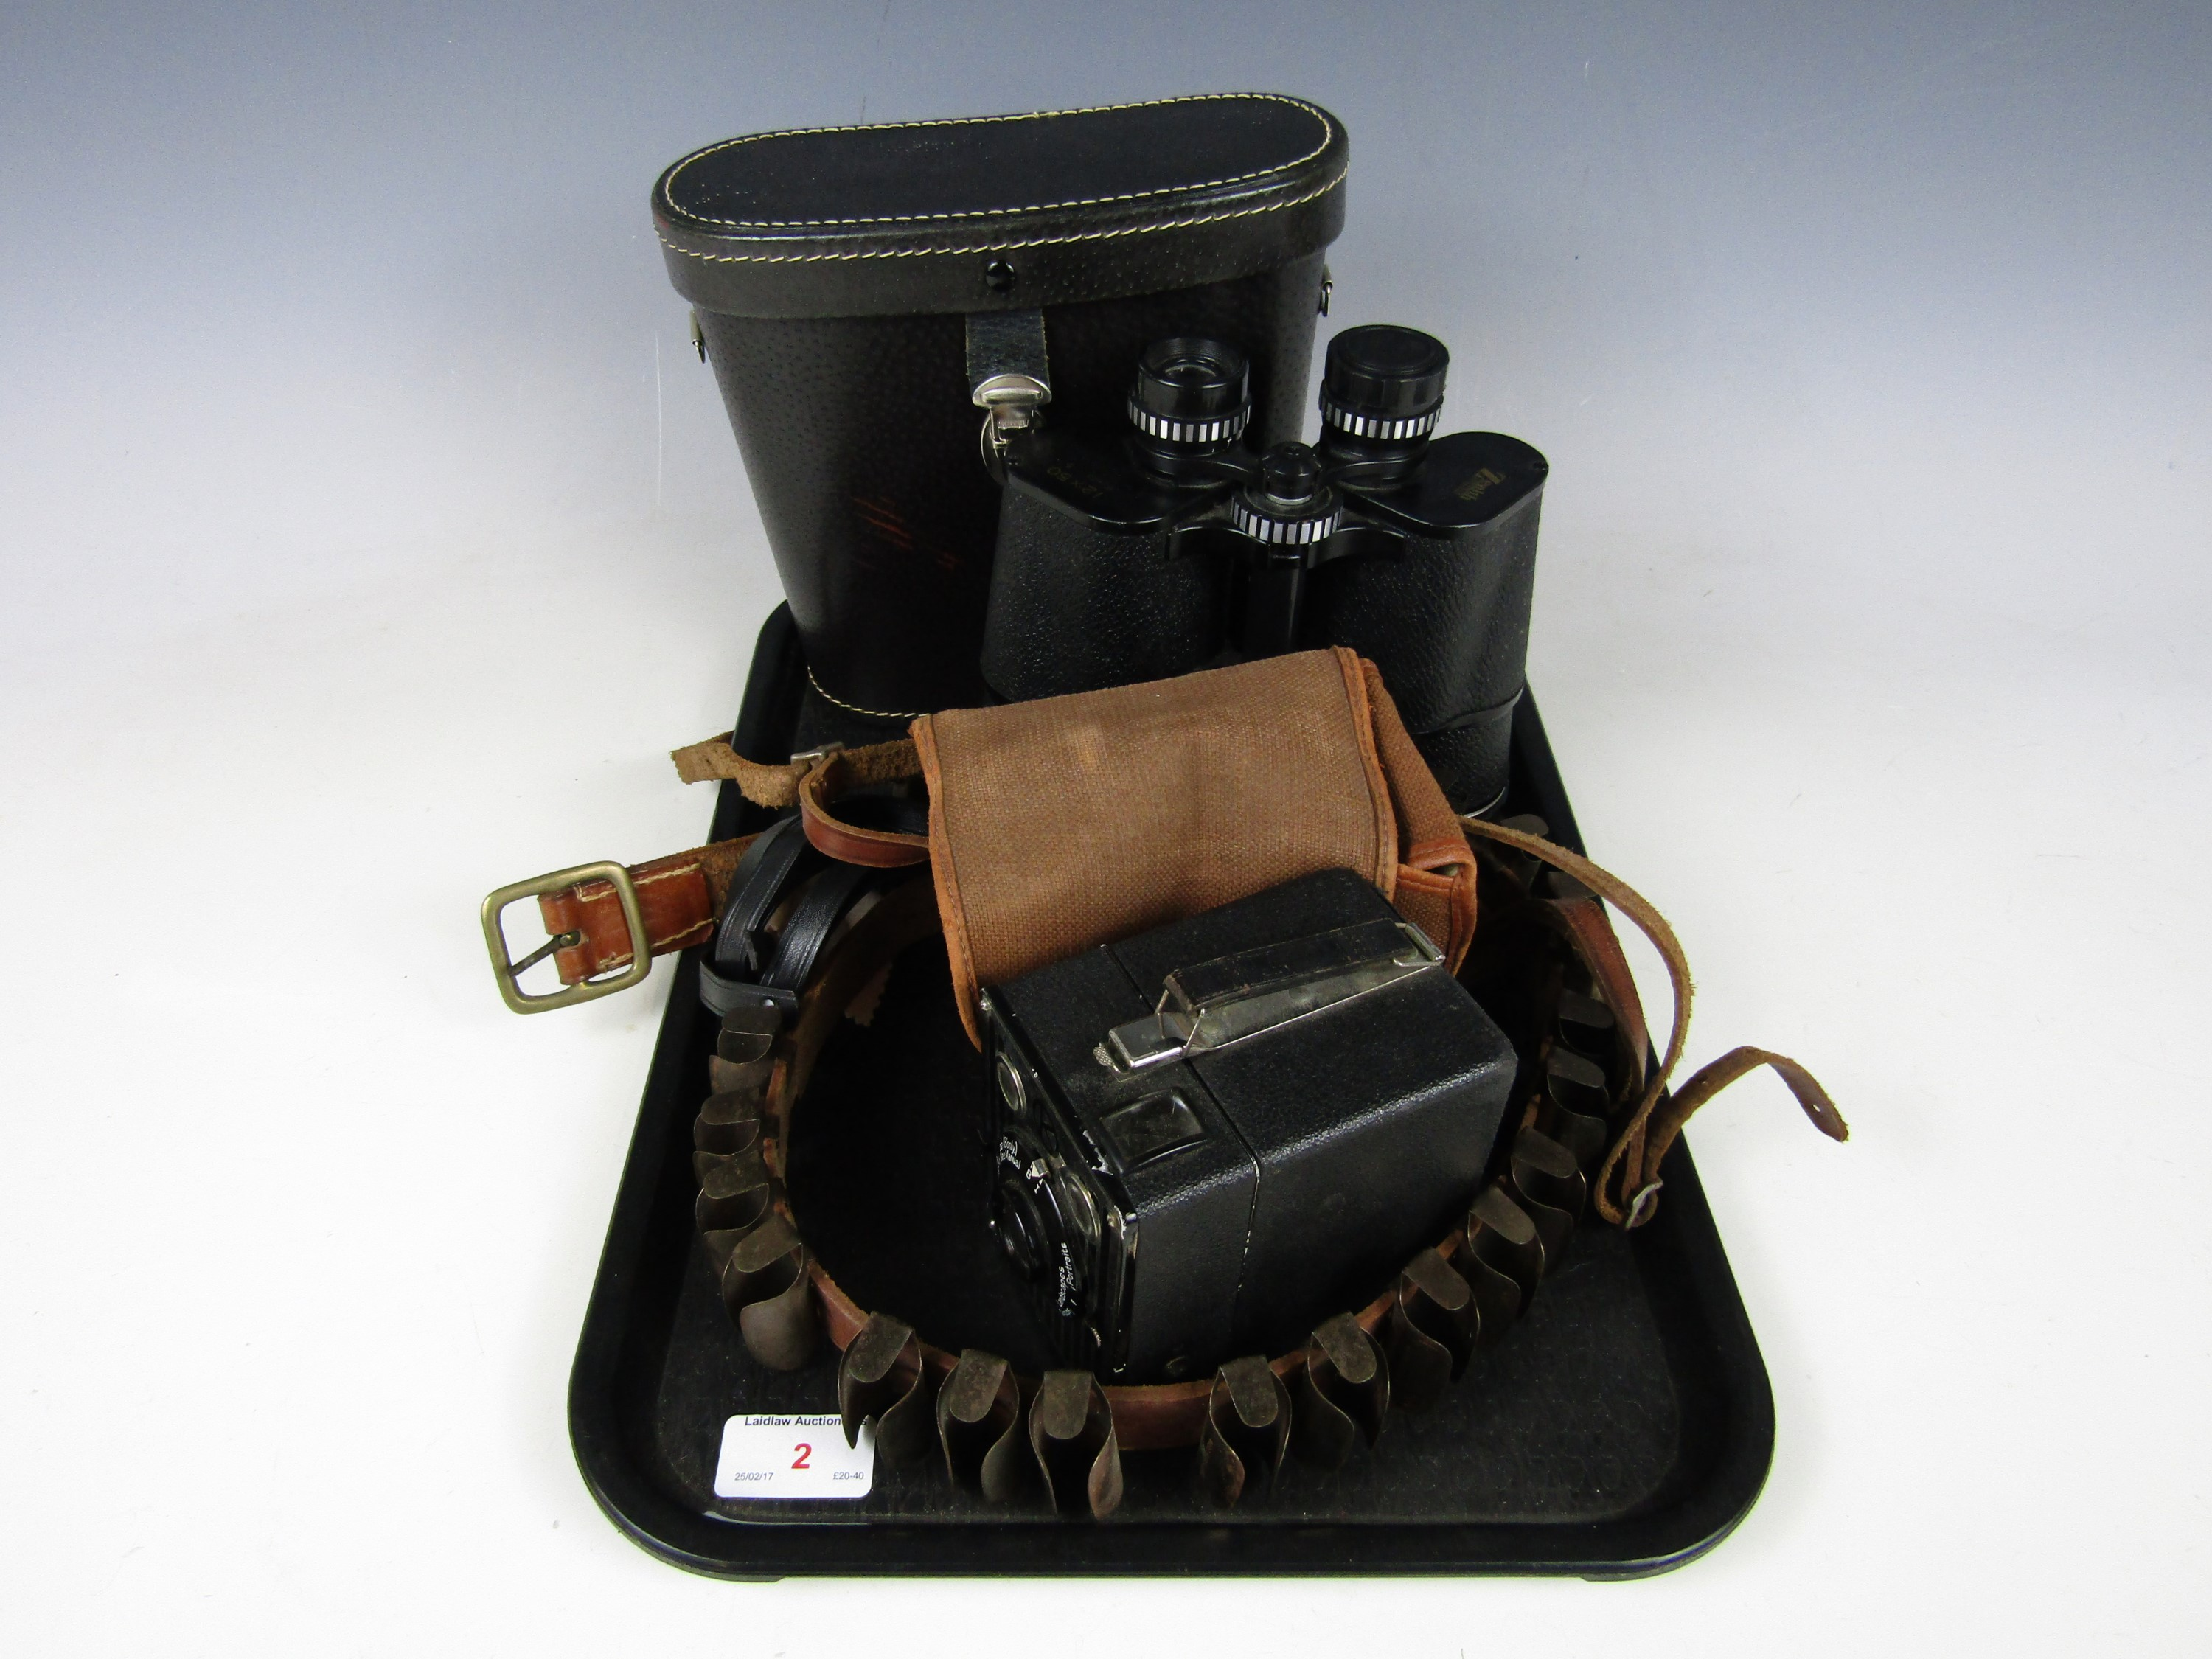 Lot 2 - A cased pair of Zenith Special binoculars, together with a cased Kodak Brownie camera and manual,